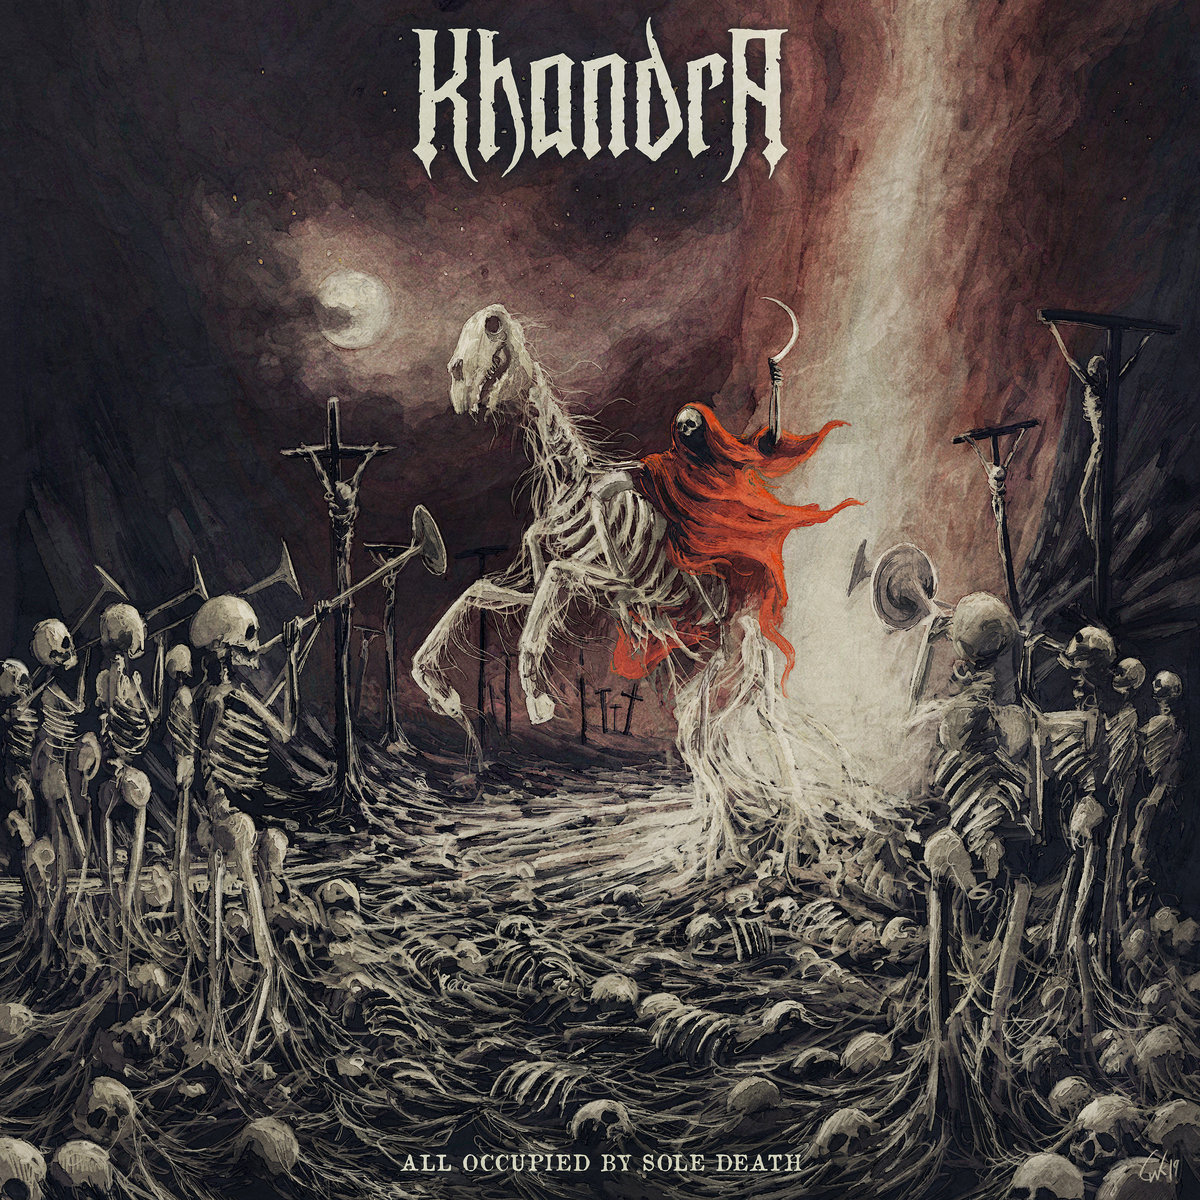 Khandra -All Occupied By Sole Death